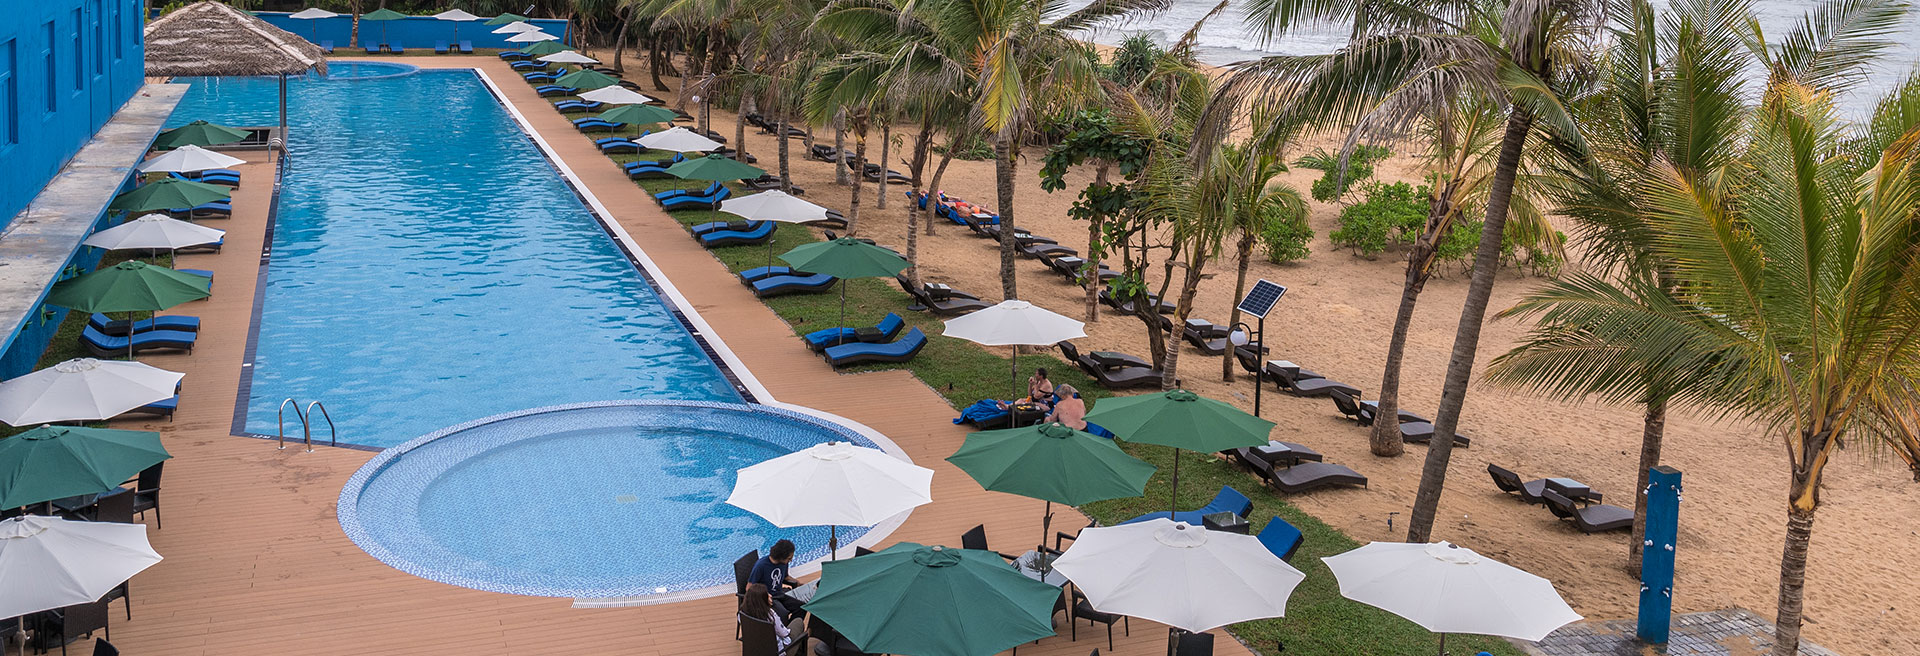 Image of the pool deck